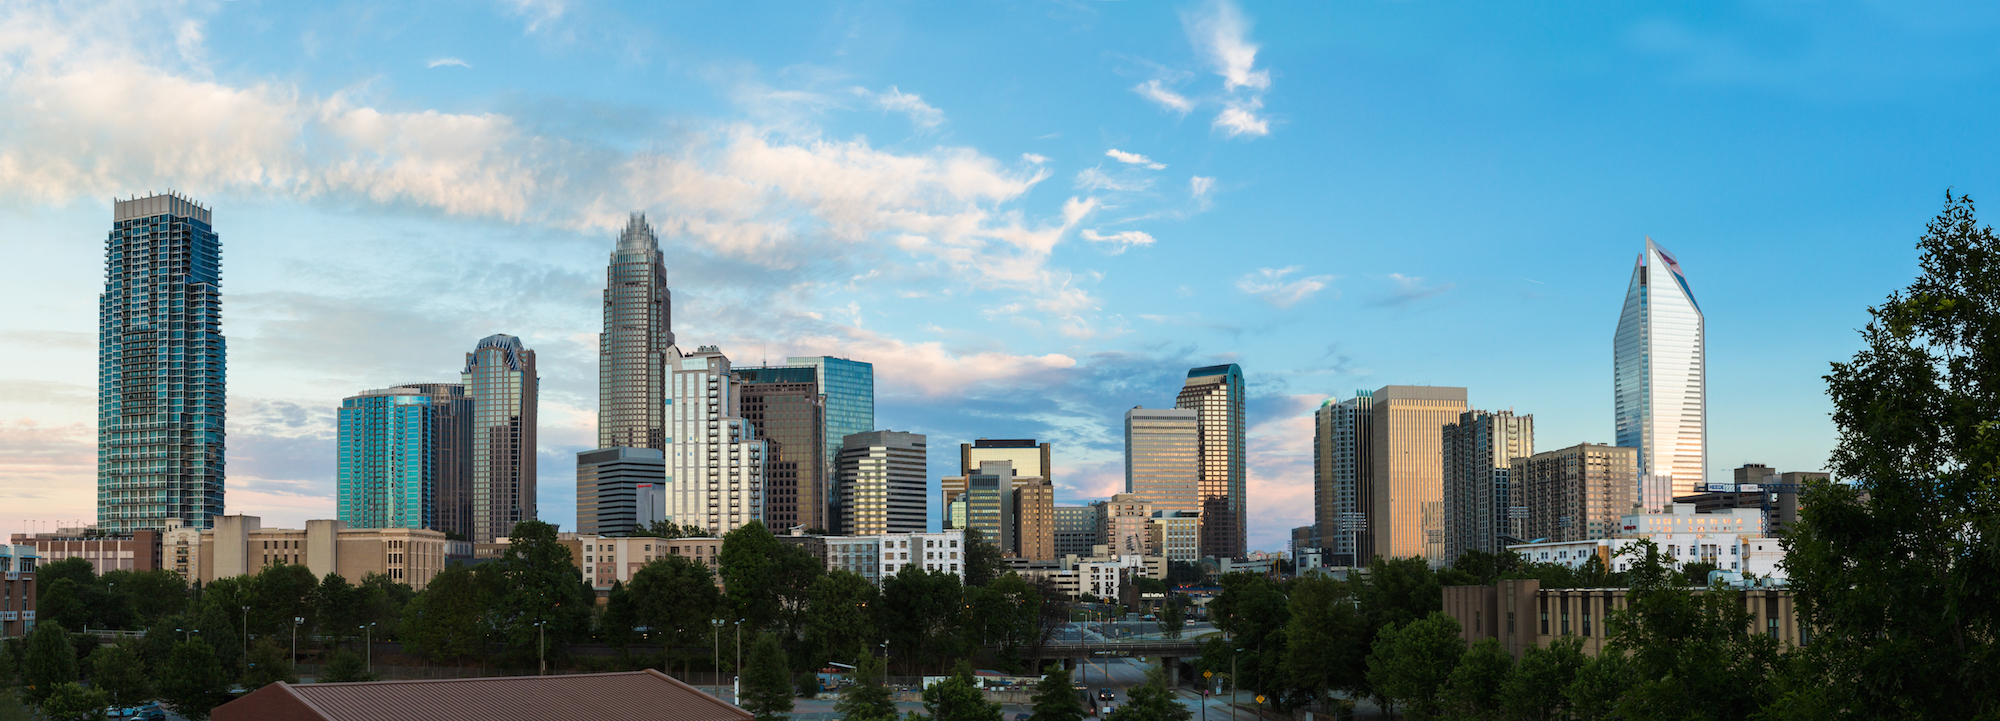 Queen City Goes Pink on October 3rd - Click photo for details - CharlottesGotALot.com